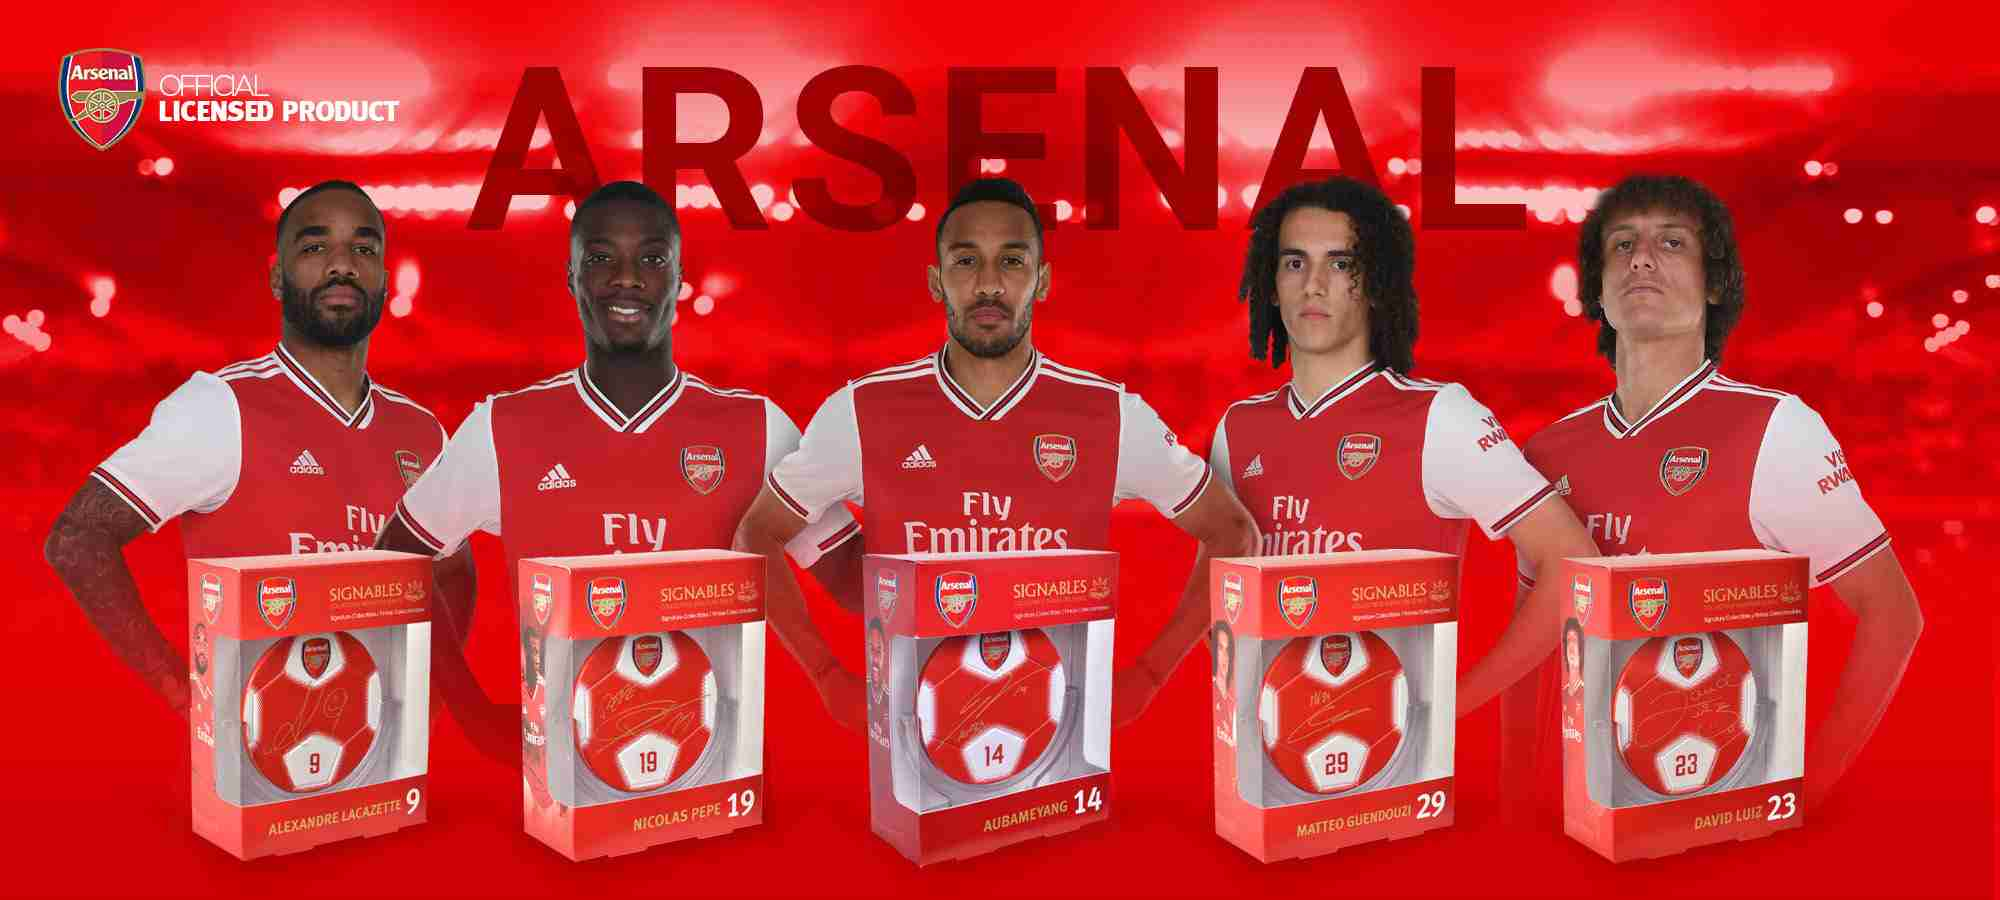 Arsenal soccer players